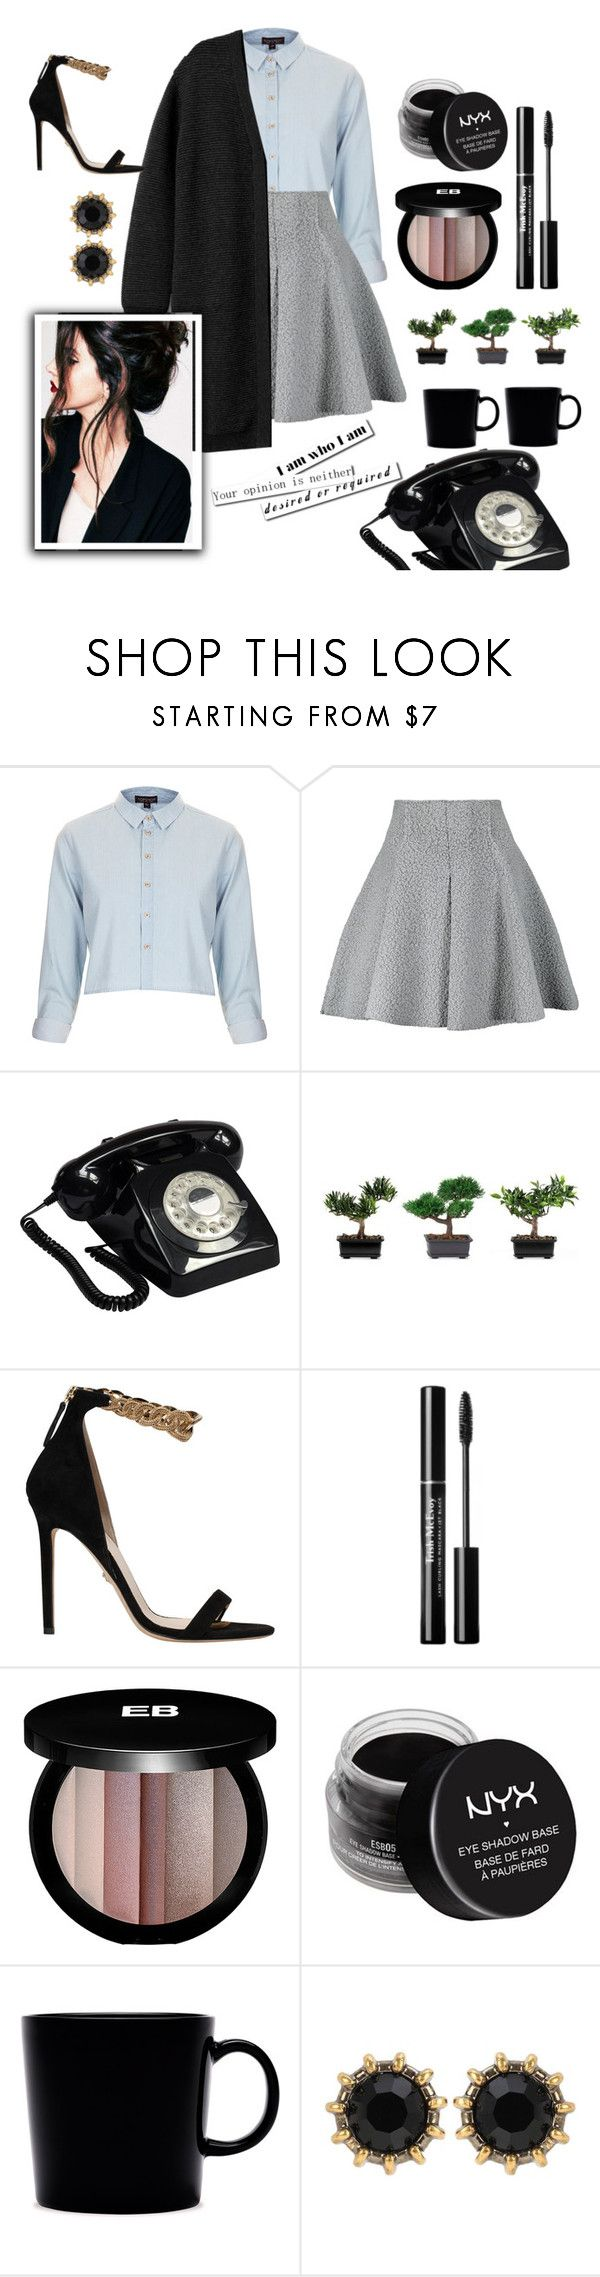 """""""Depois das seis"""" by thais-santana-1 ❤ liked on Polyvore featuring Topshop, M Missoni, GPO, Nearly Natural, Versace, Edward Bess, NYX, iittala and Gucci"""